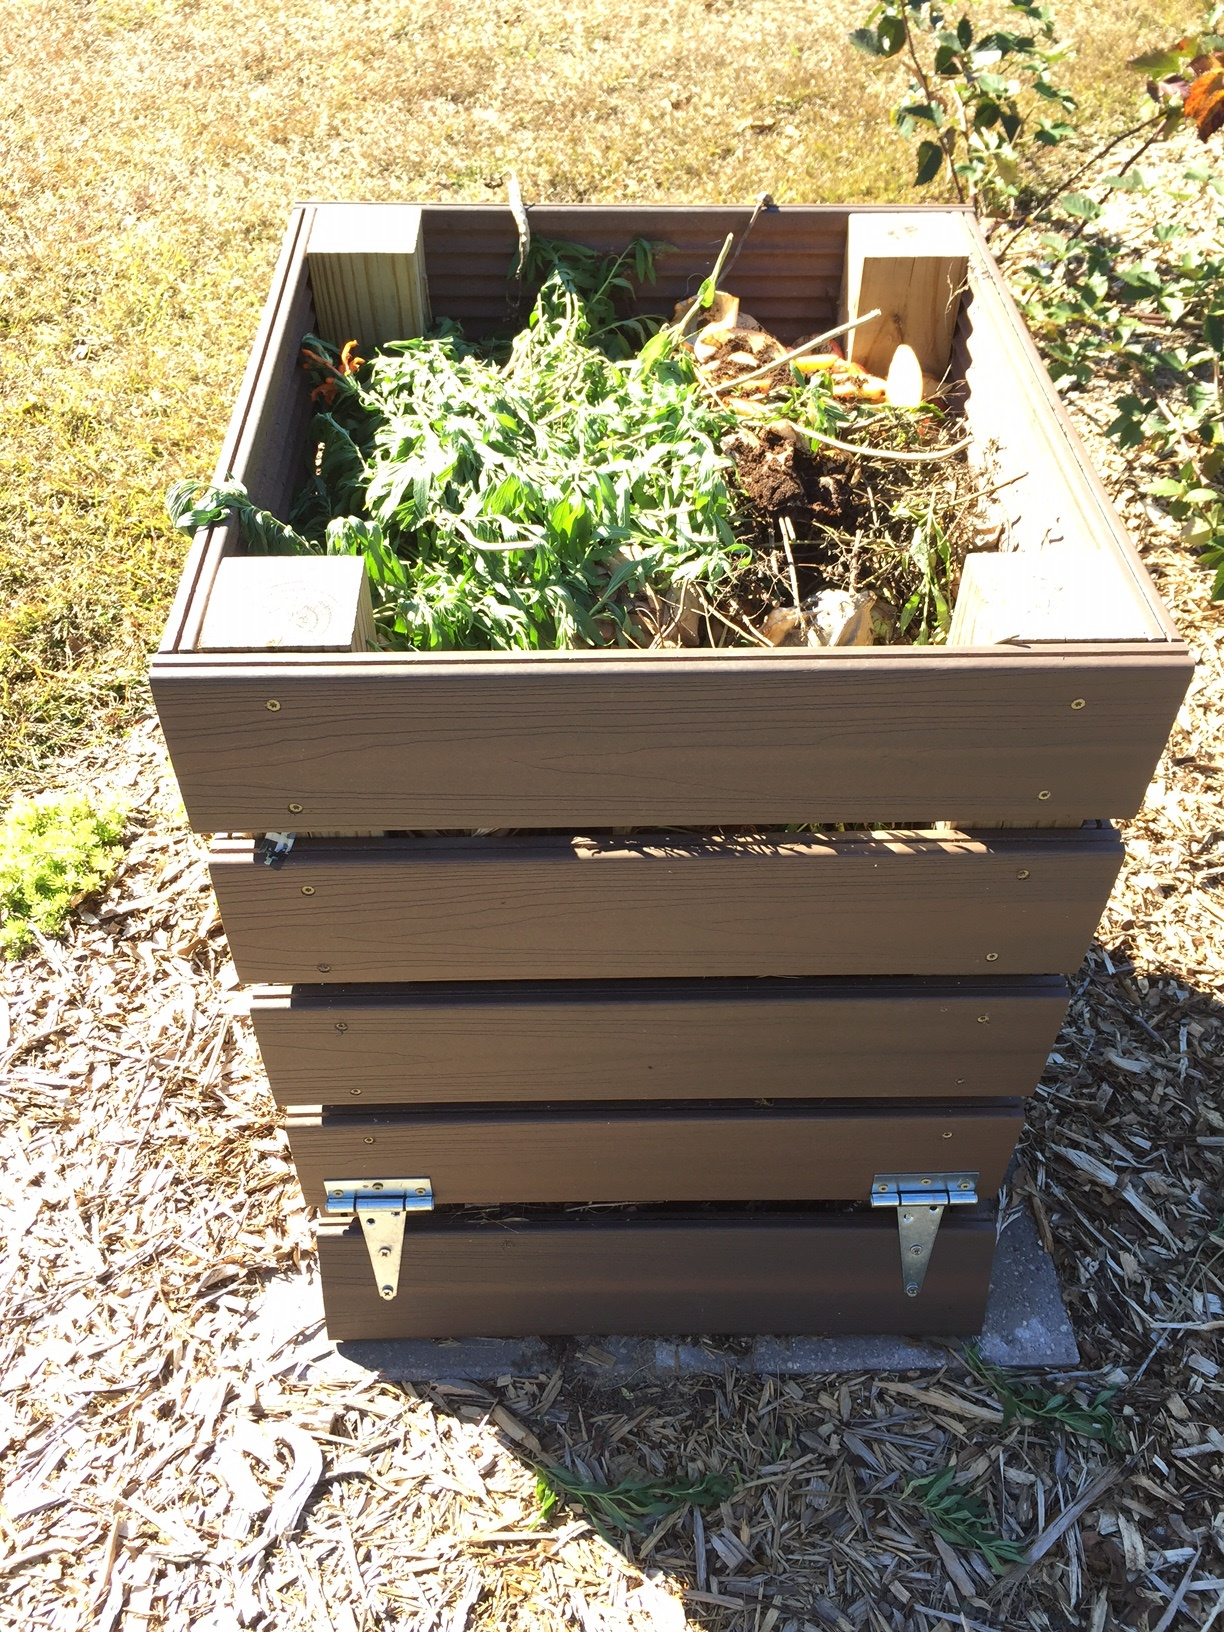 Composting–A Great way to Start off the New Year